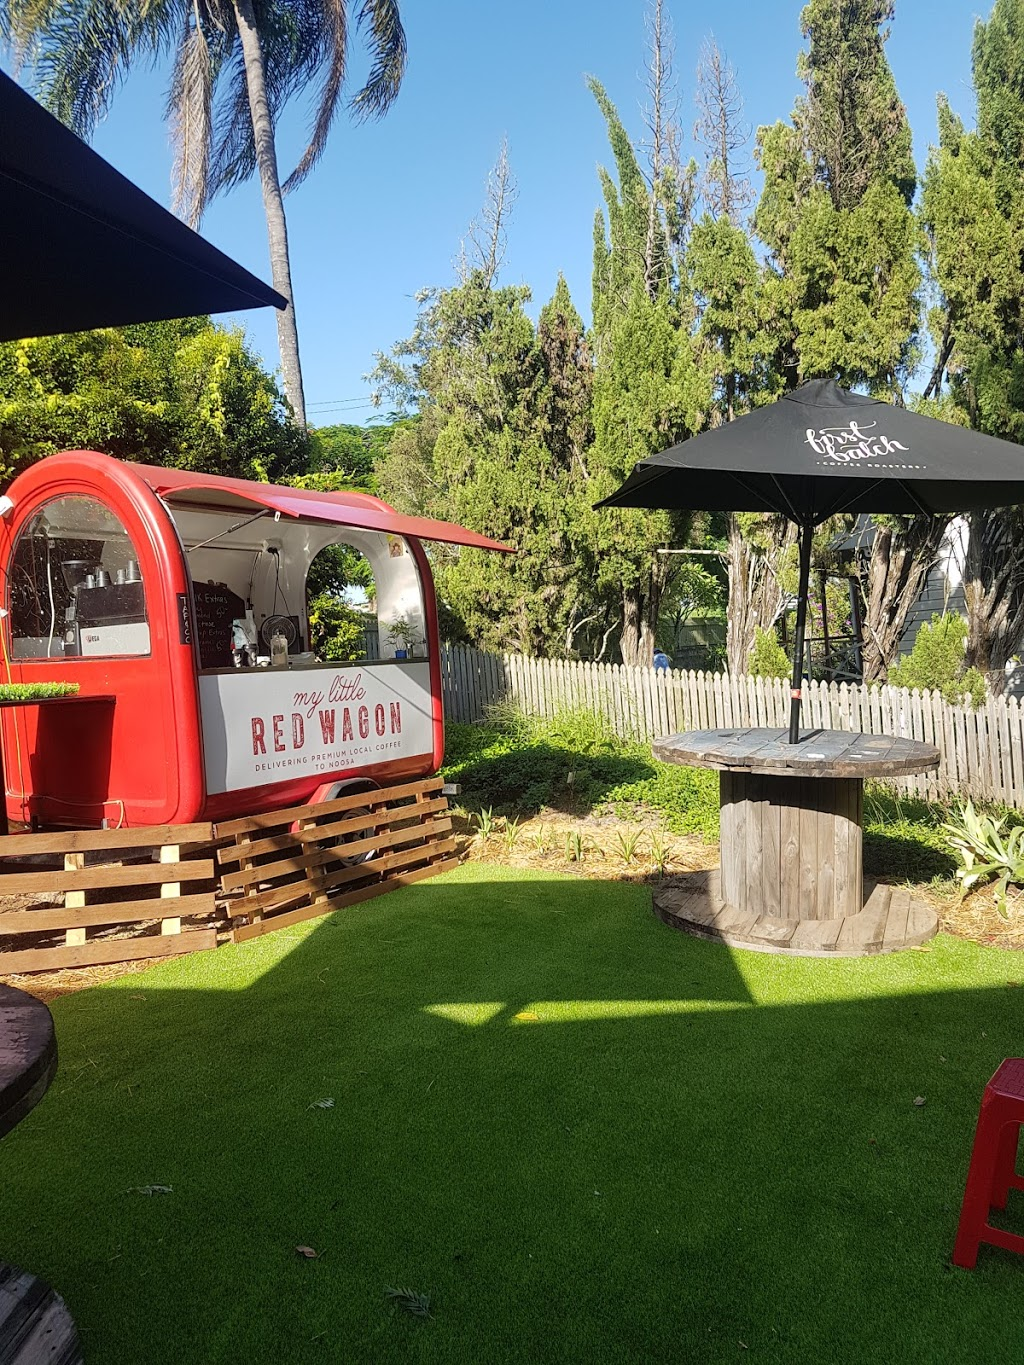 My Little Red Wagon Cafe 40 Wilson Ave Woombye Qld 4559 Australia